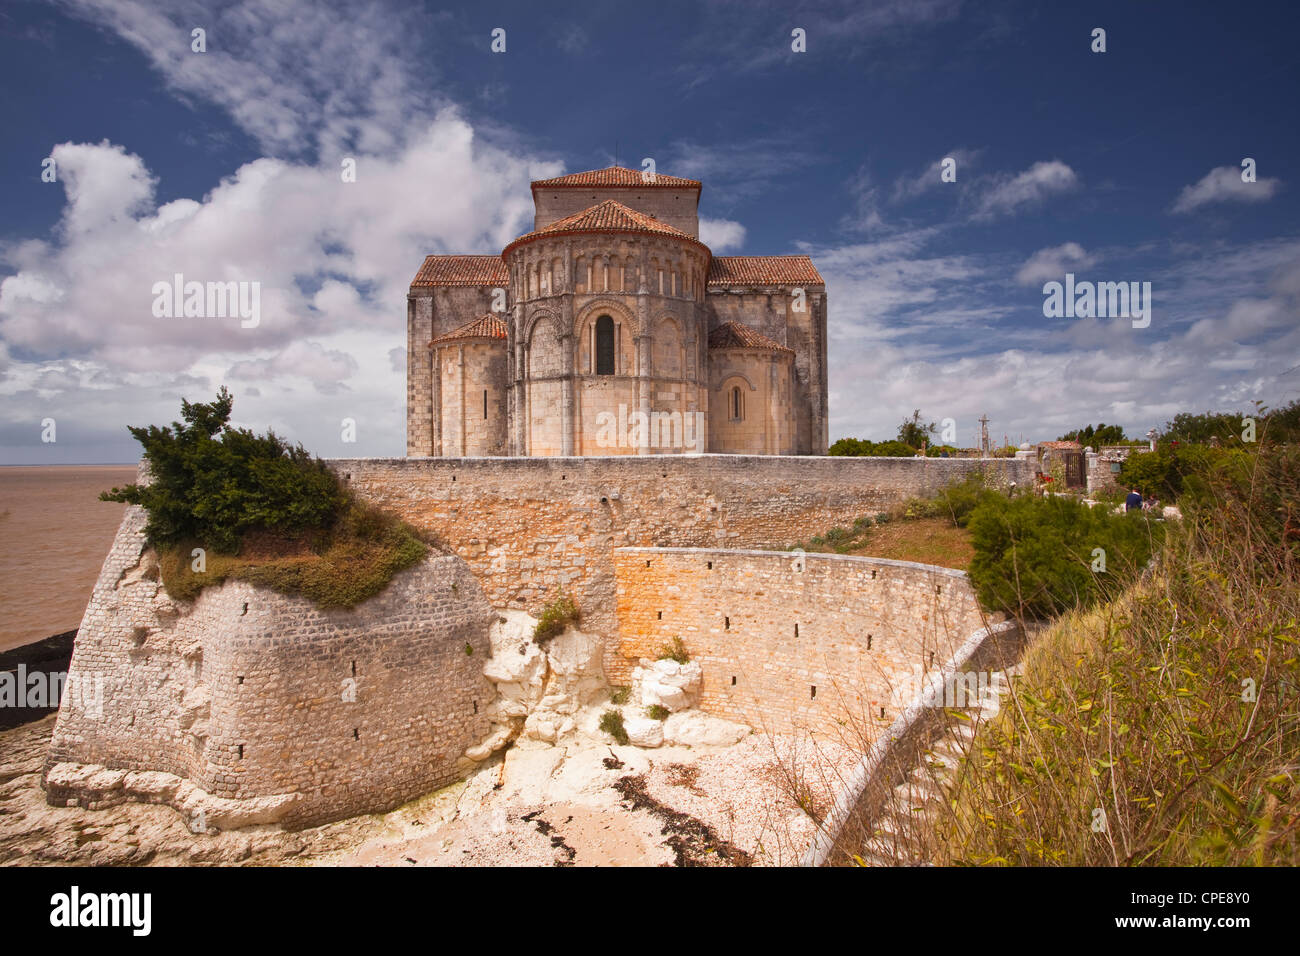 Saint Redegonde church, Talmont, Charente-Maritime, France, Europe - Stock Image